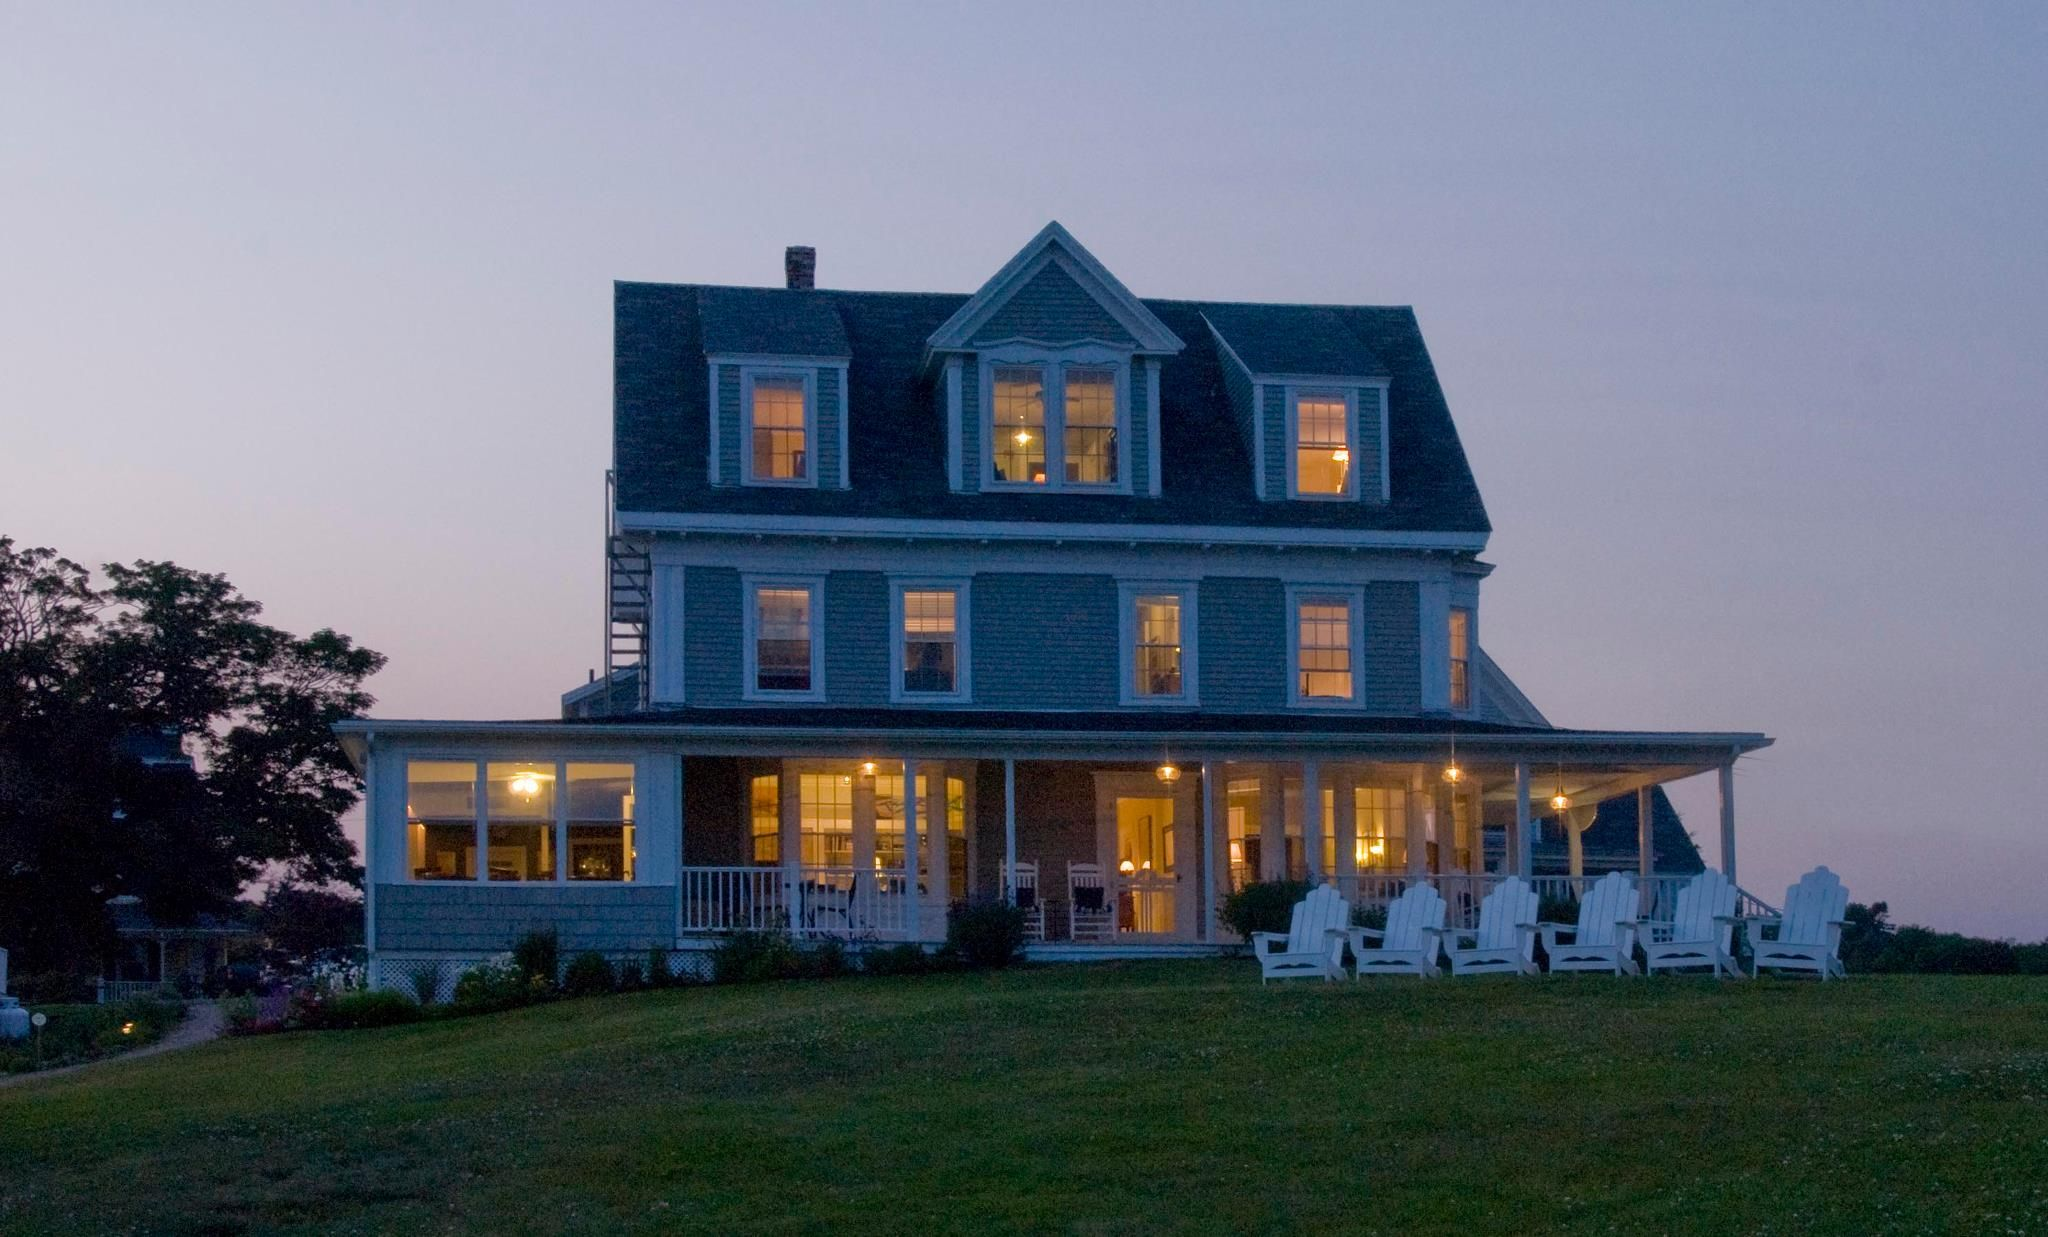 Pin by Monhegan Boat Line on Places to Stay in MidCoast